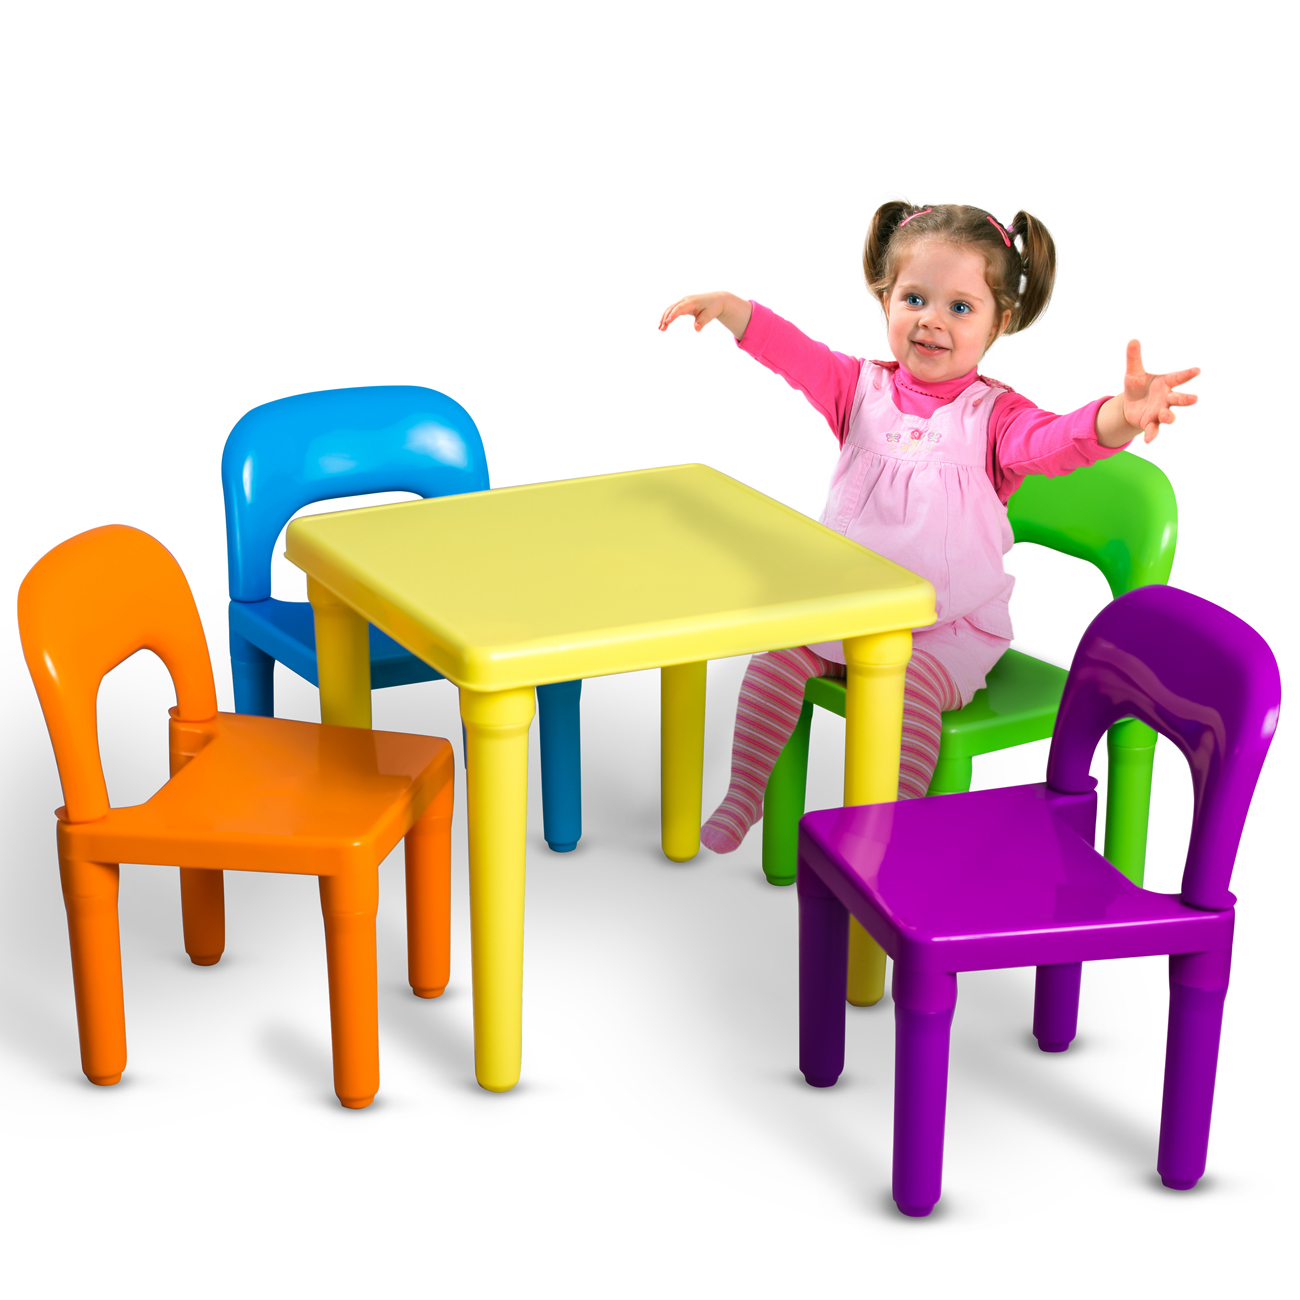 OxGord Kids Table And Chairs Play Set For Toddler Child Toy Activity Furniture Indoor Or Outdoor  sc 1 st  Walmart & Kidsu0027 Table u0026 Chair Sets - Walmart.com